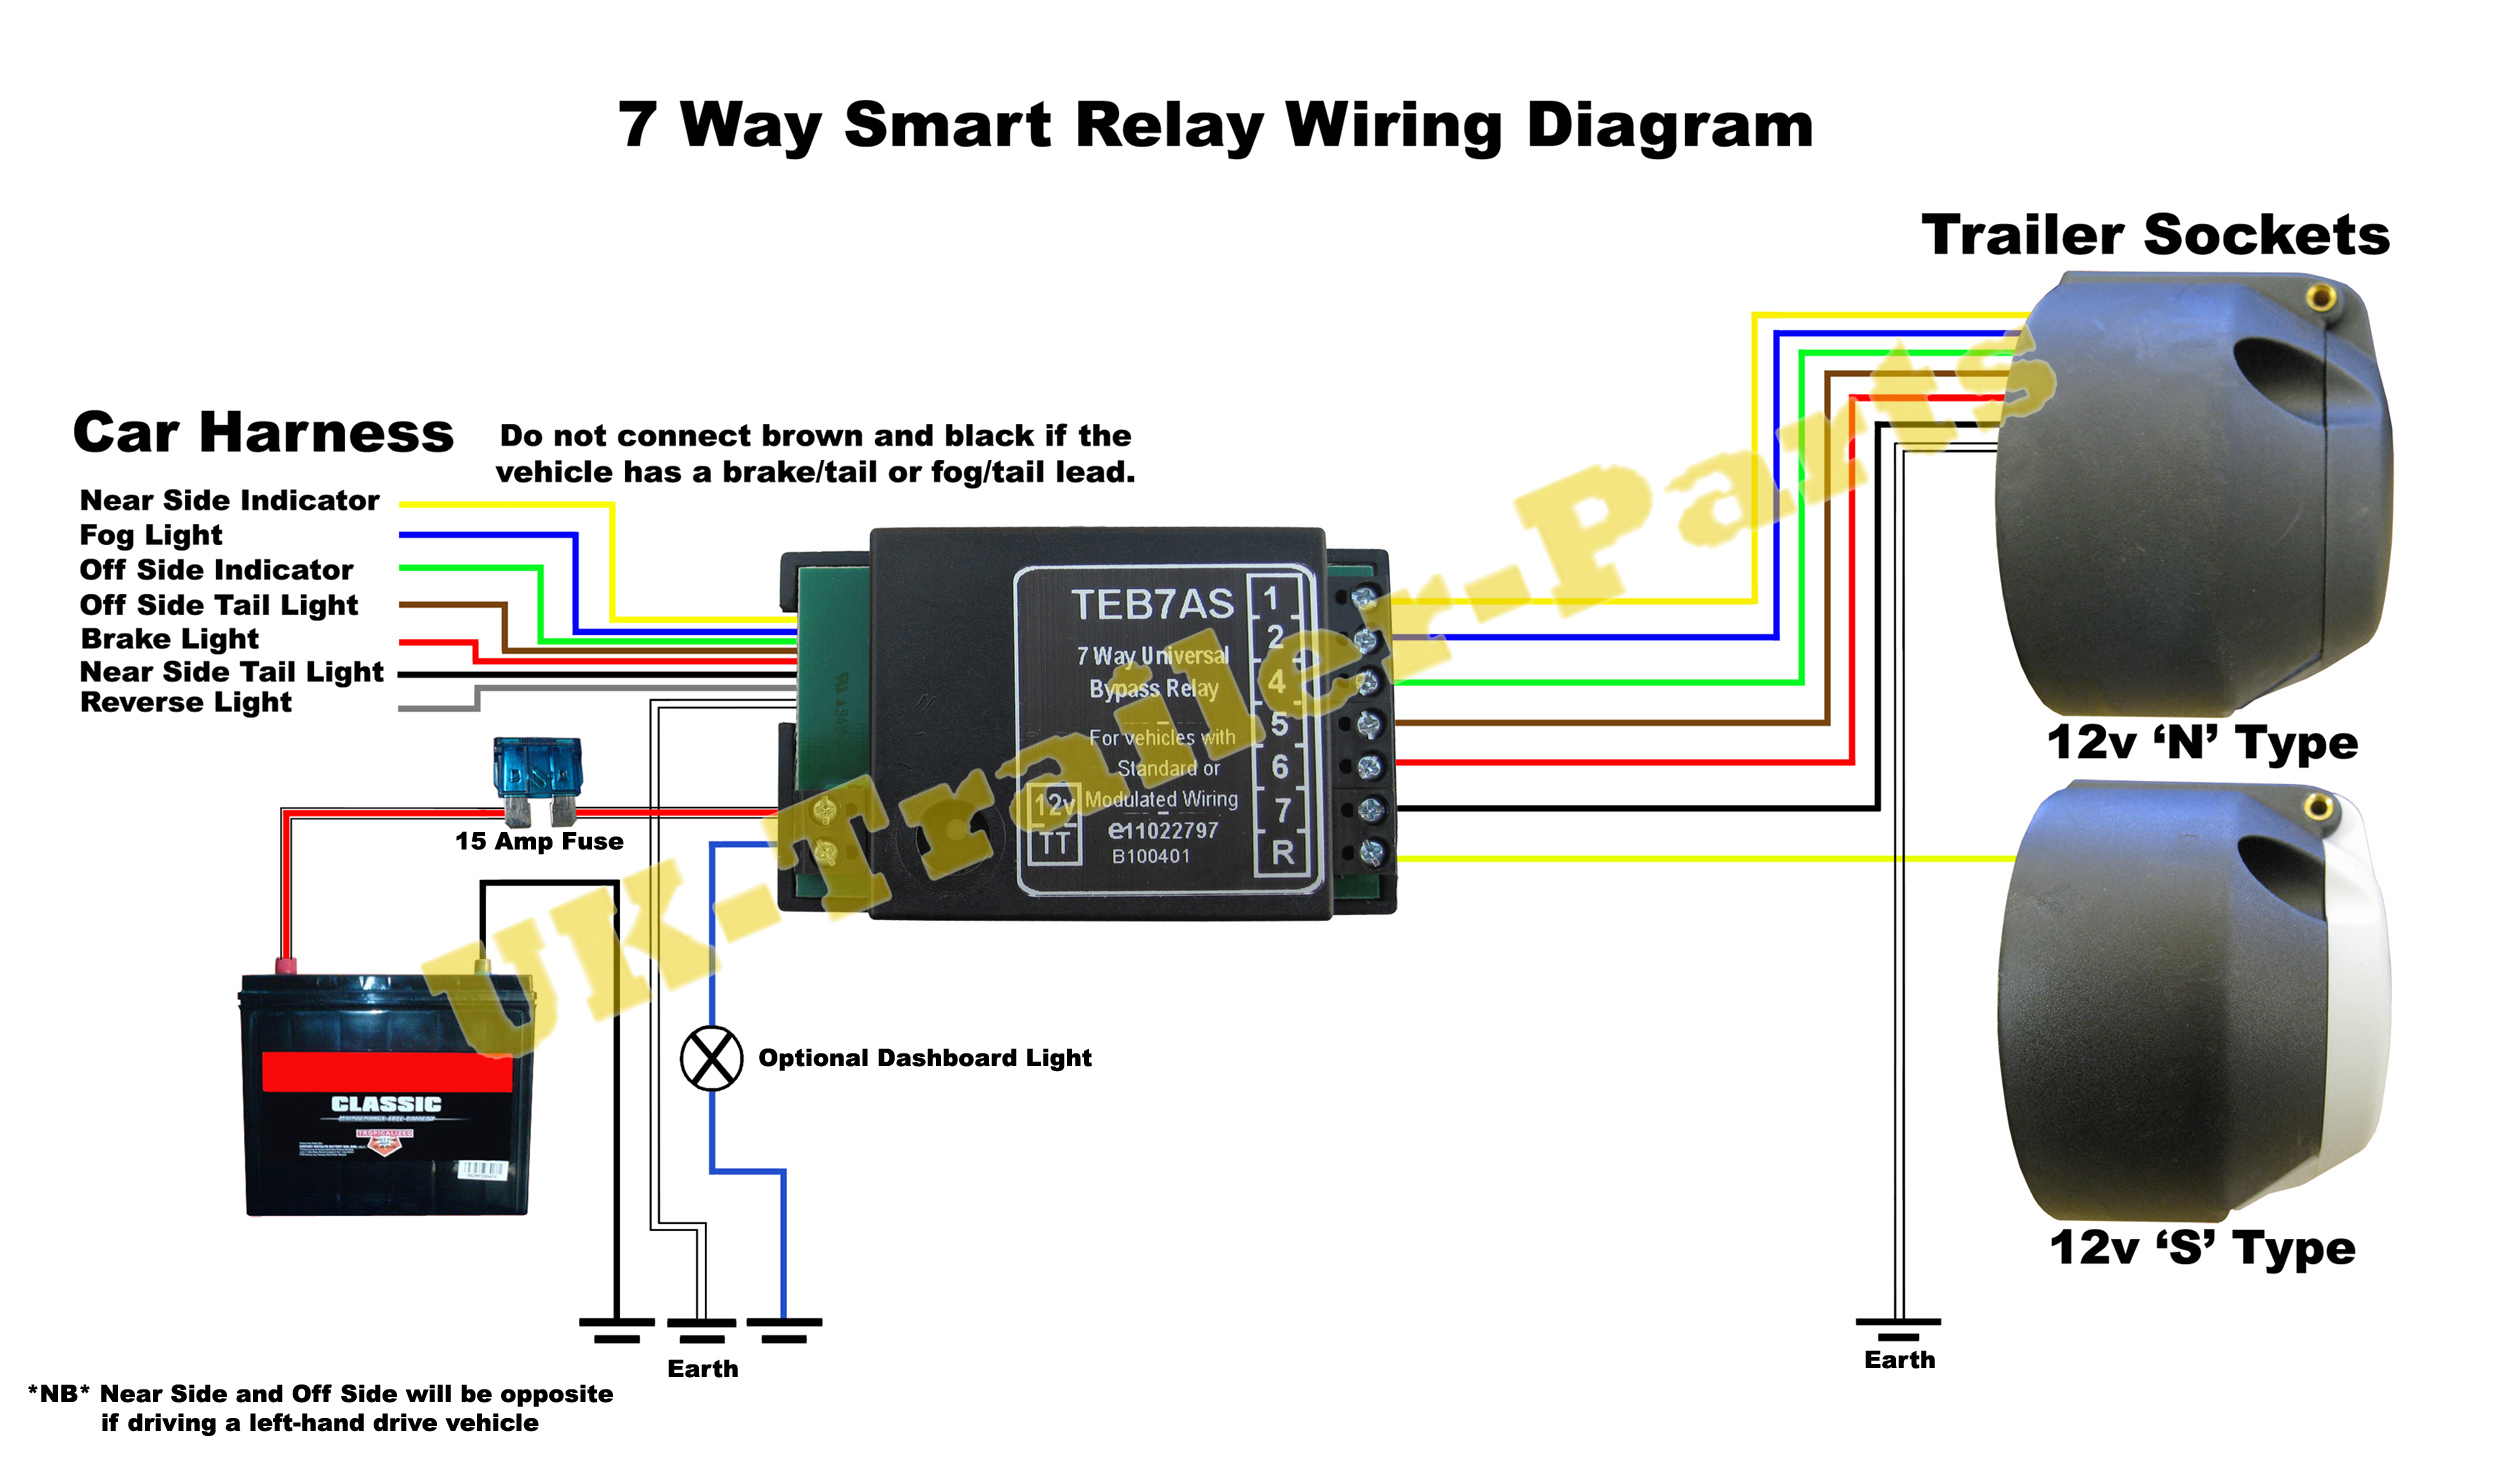 smart relay wiring diagram2 7 way universal bypass relay wiring diagram uk trailer parts volvo v70 towbar wiring diagram at alyssarenee.co